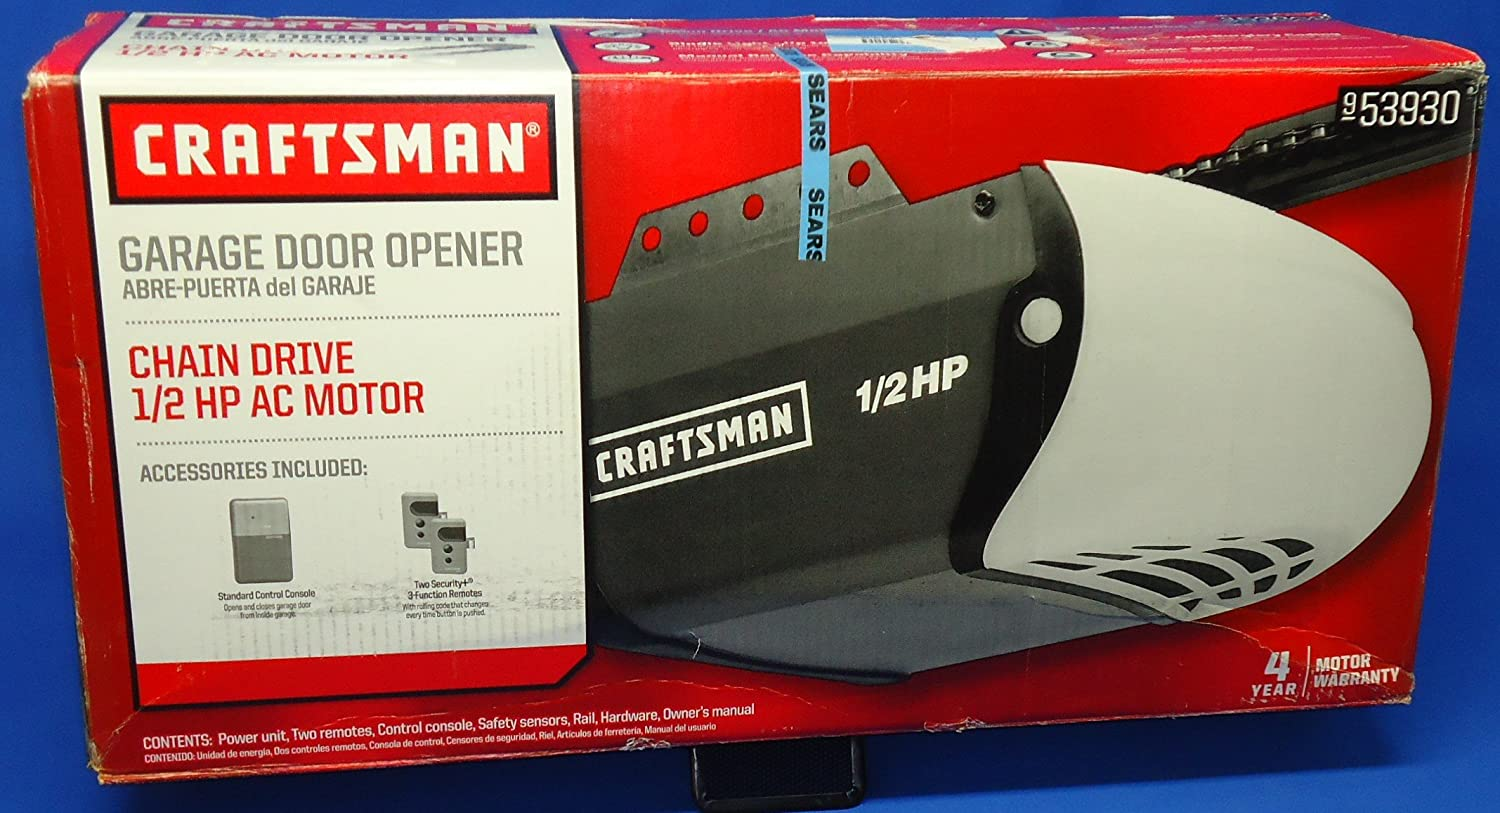 Craftsman 53930 cm garage opener 12 hp sears garage door craftsman 53930 cm garage opener 12 hp sears garage door openers amazon rubansaba